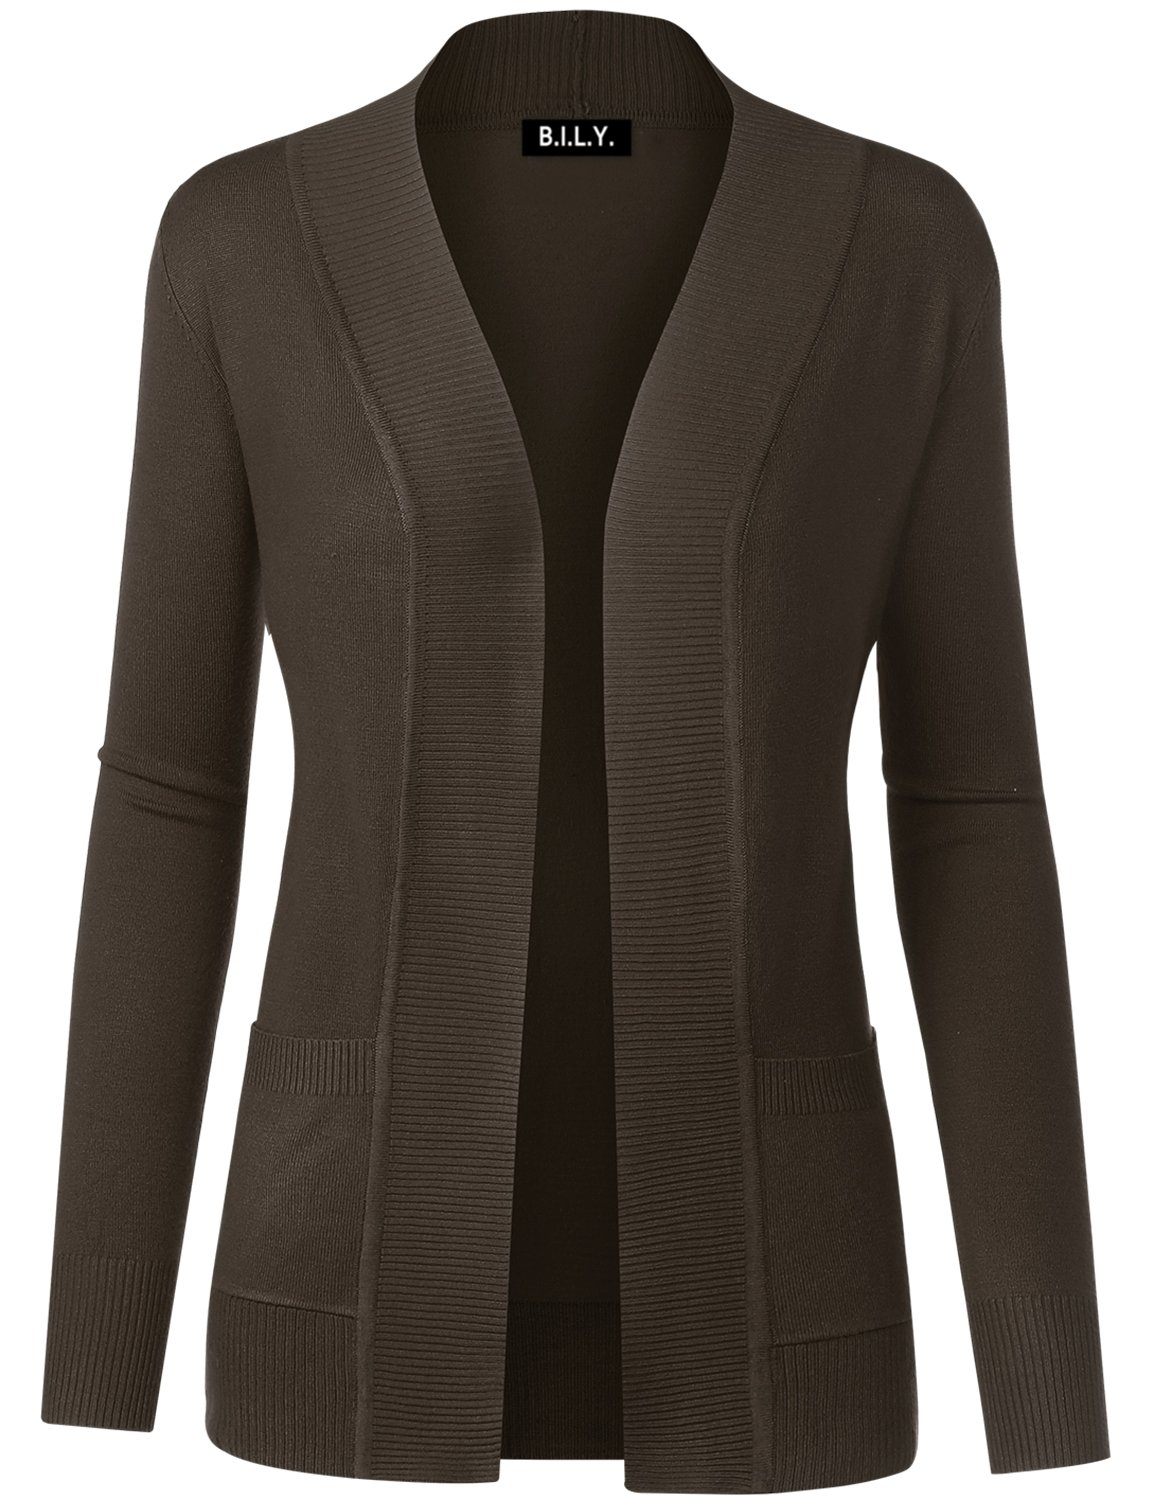 B.I.L.Y Women Open Front Long Sleeve Classic Knit Cardigan